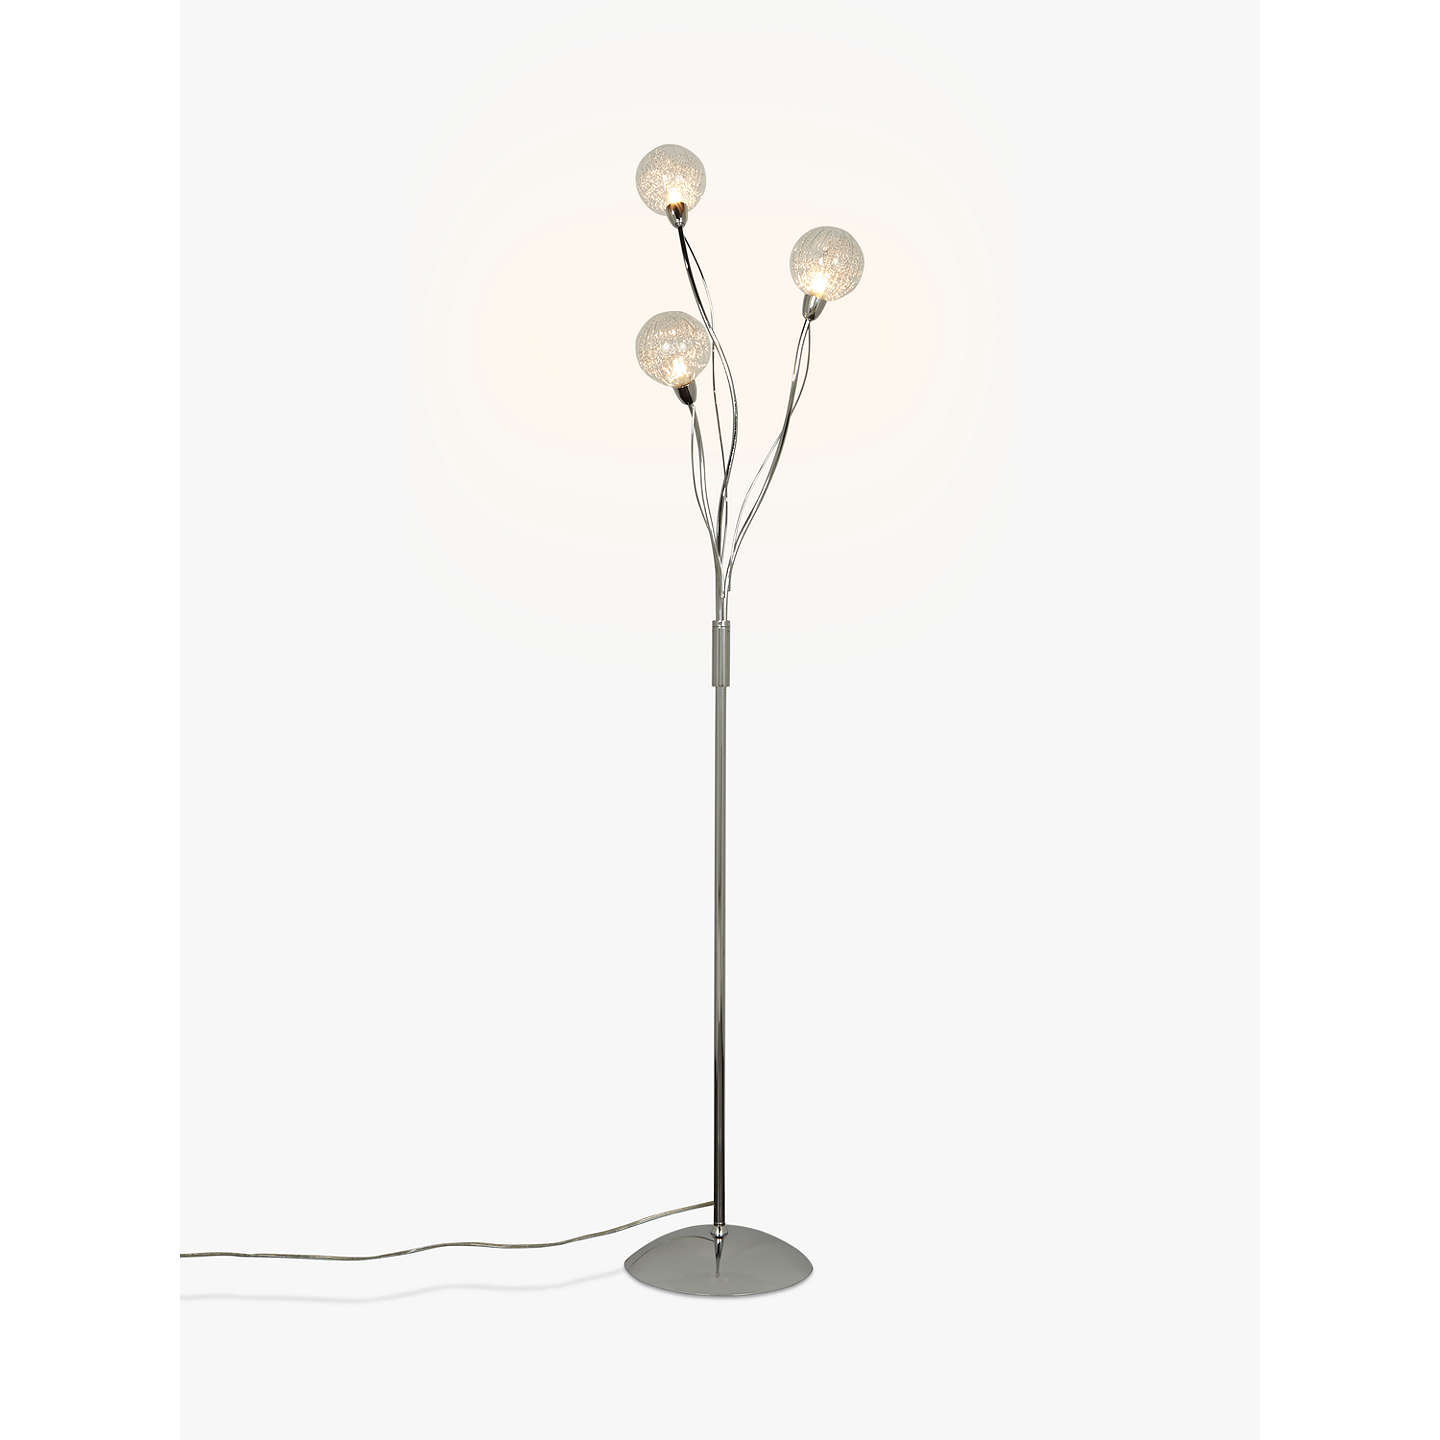 John lewis robertson floor lamp 3 light clear at john lewis buyjohn lewis robertson floor lamp 3 light clear online at johnlewis mozeypictures Choice Image